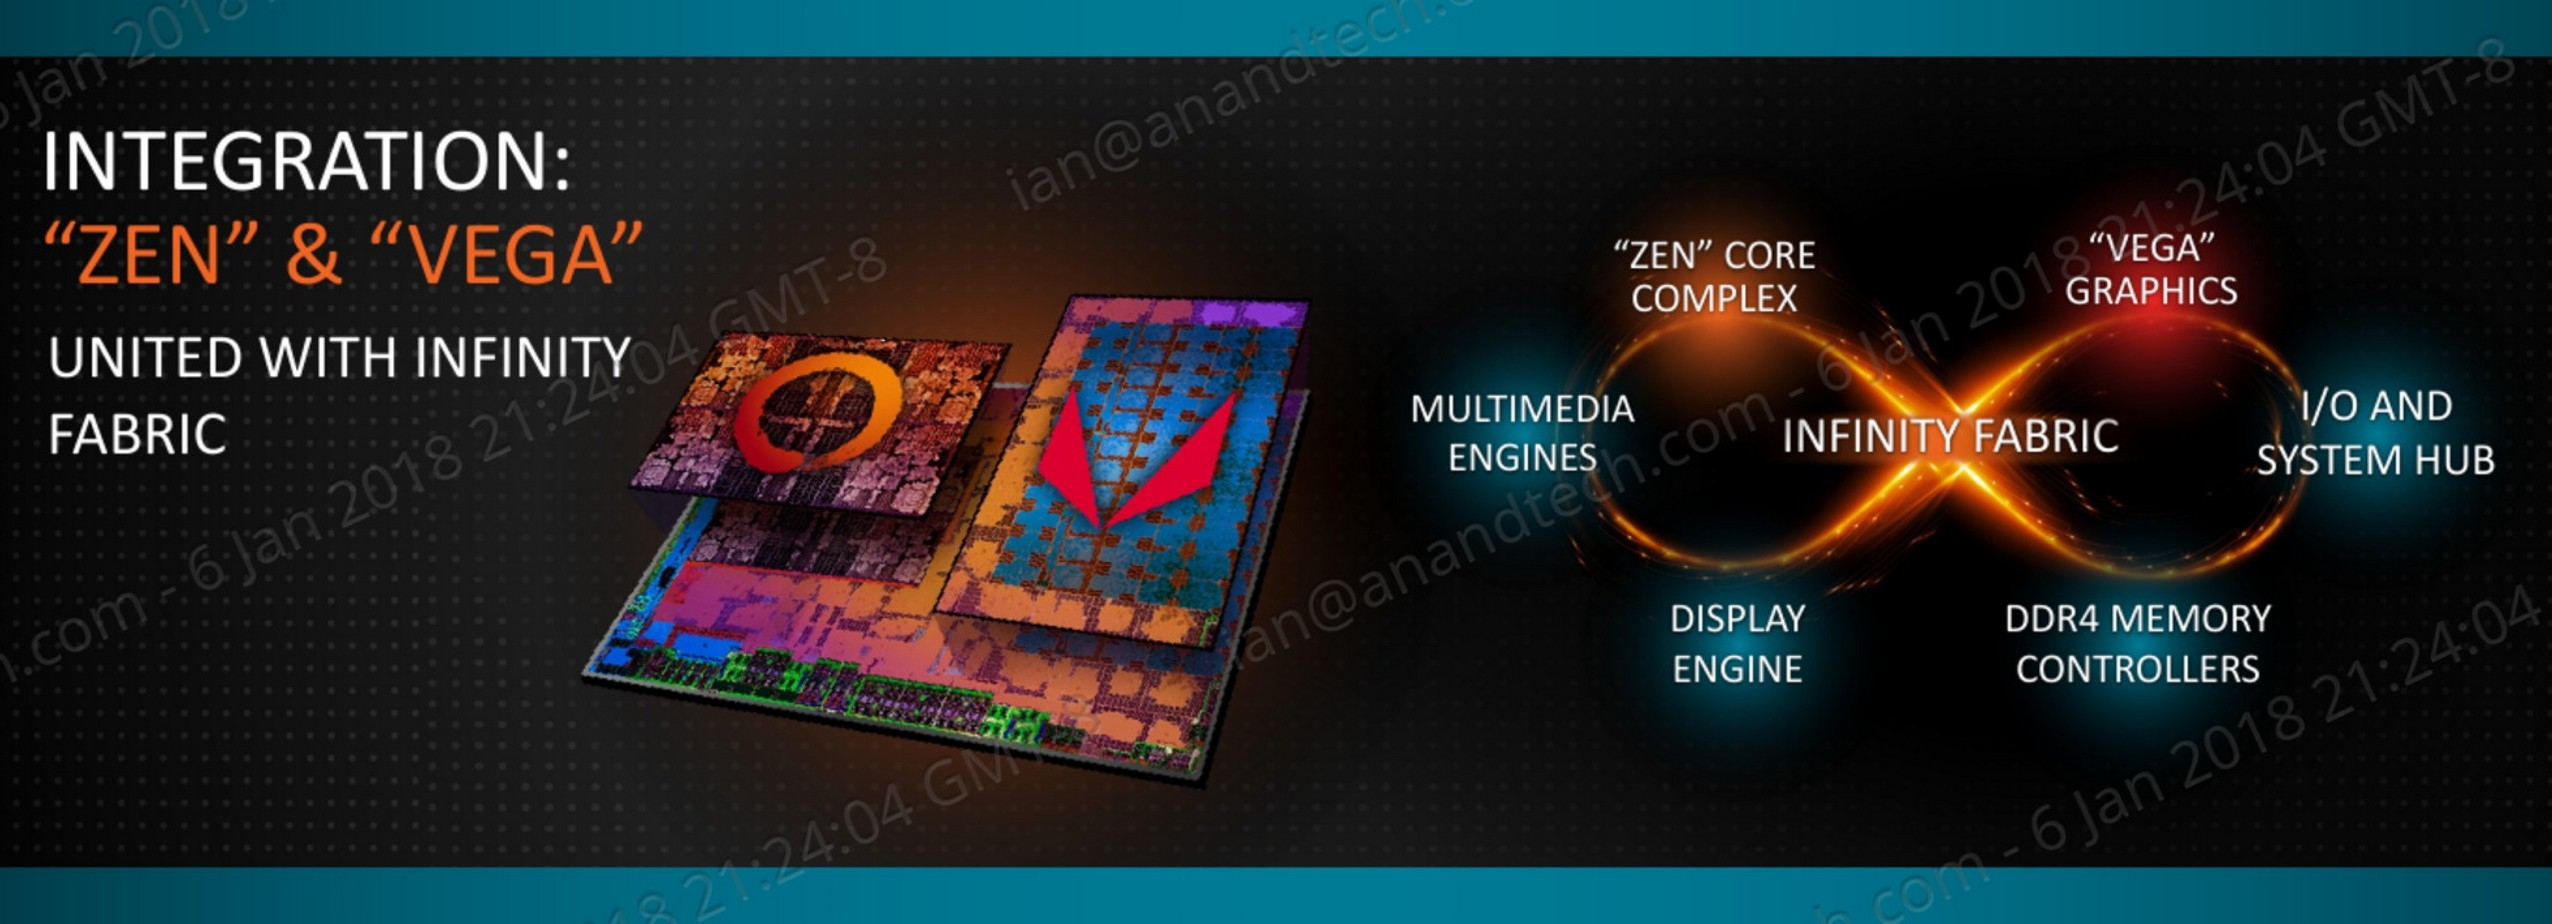 Zen And Vega Ddr4 Memory Scaling On Amd S Apus